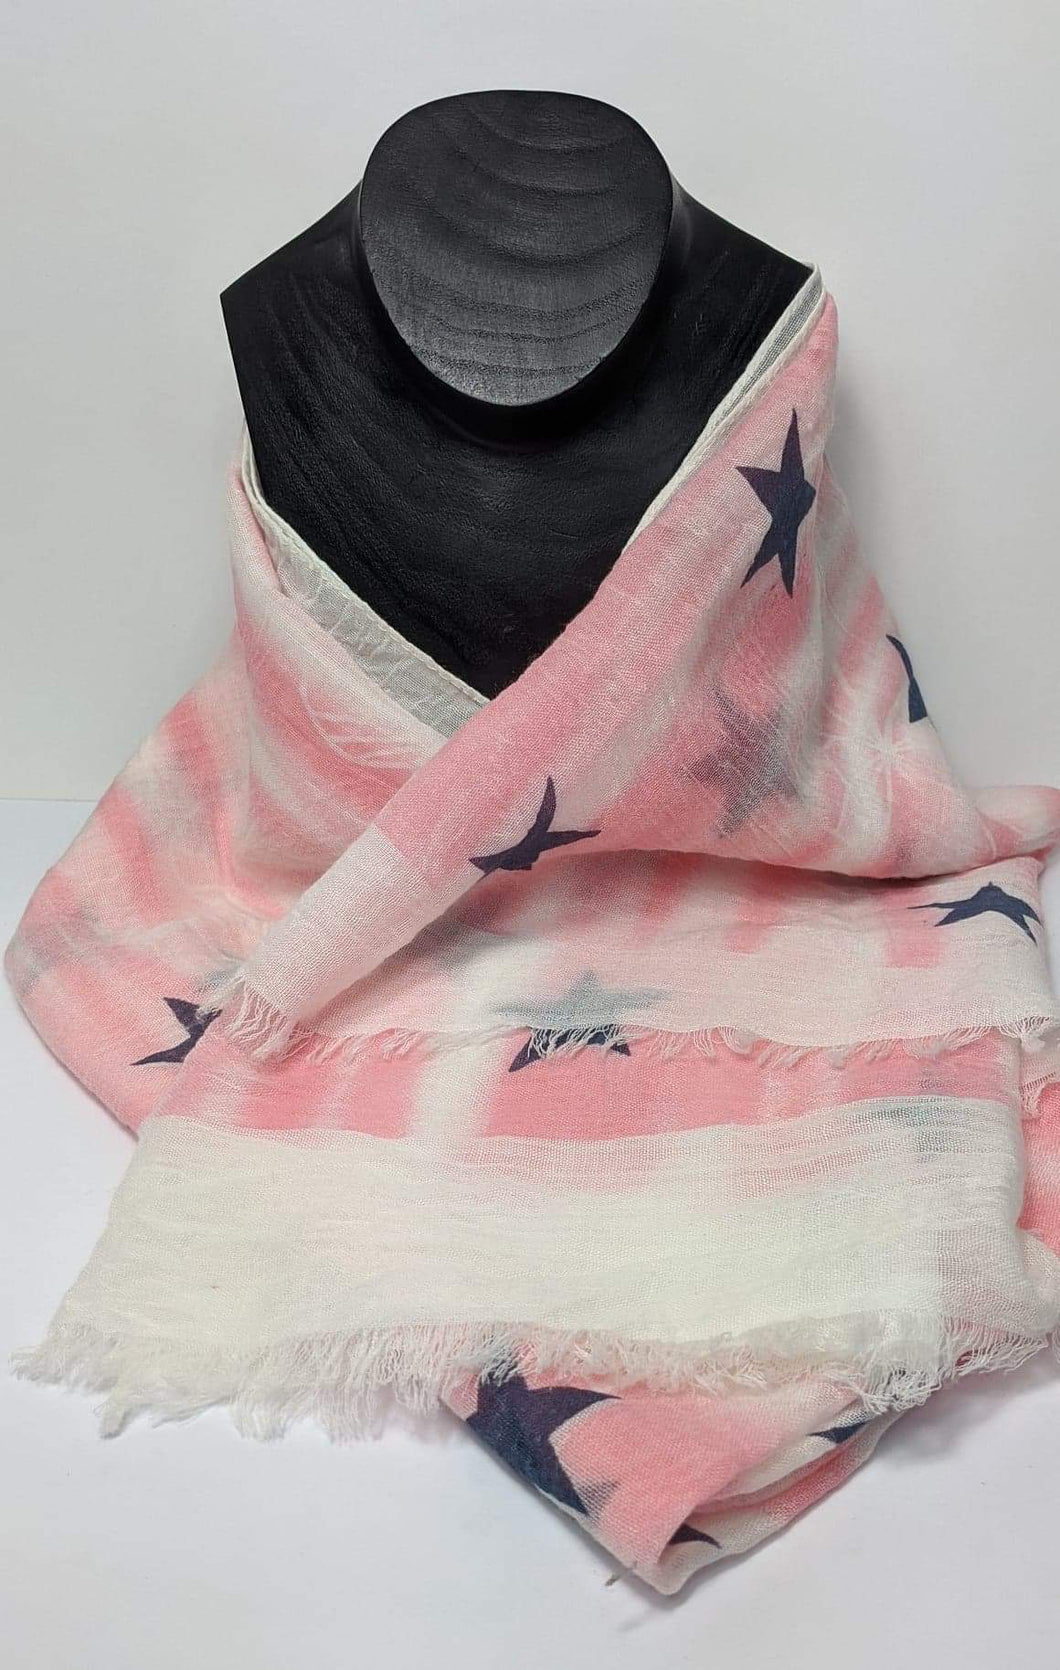 Pink, White and Navy Starry Scarf